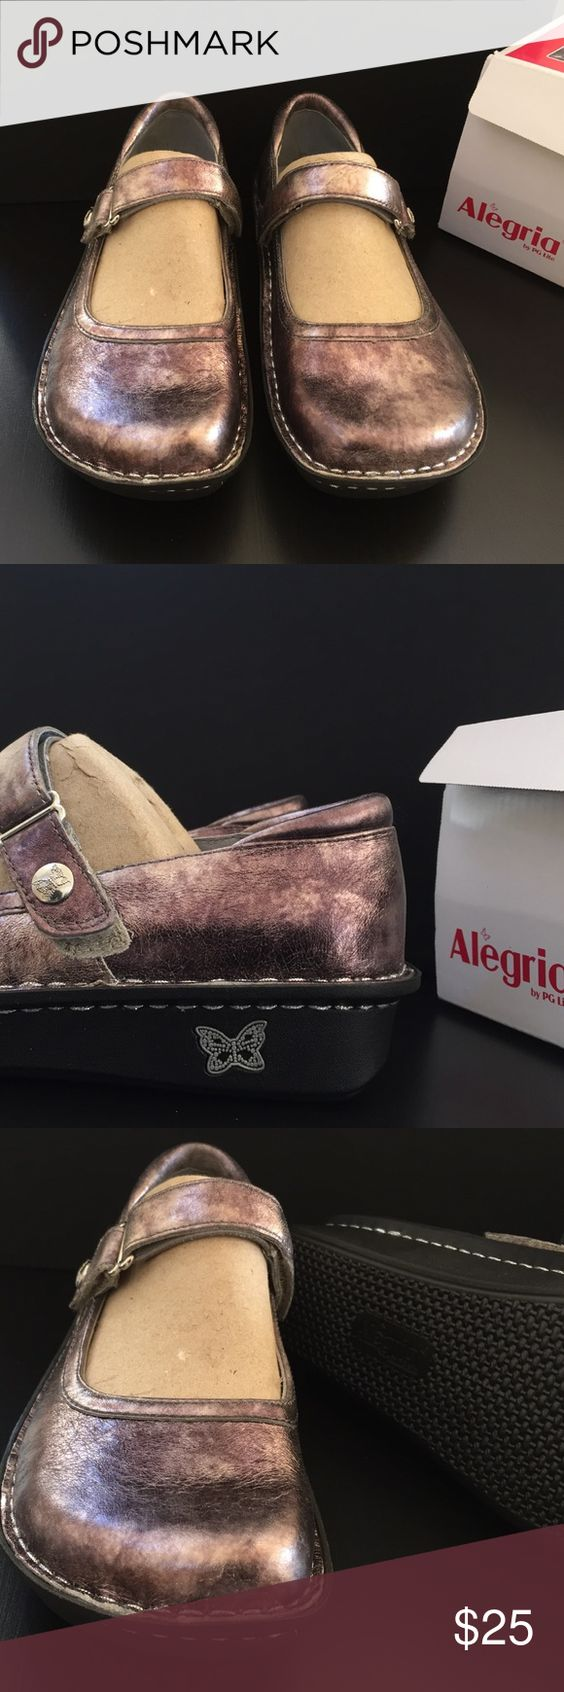 Alegria Shoes NEW. Nice Arch support. Alegria Shoes